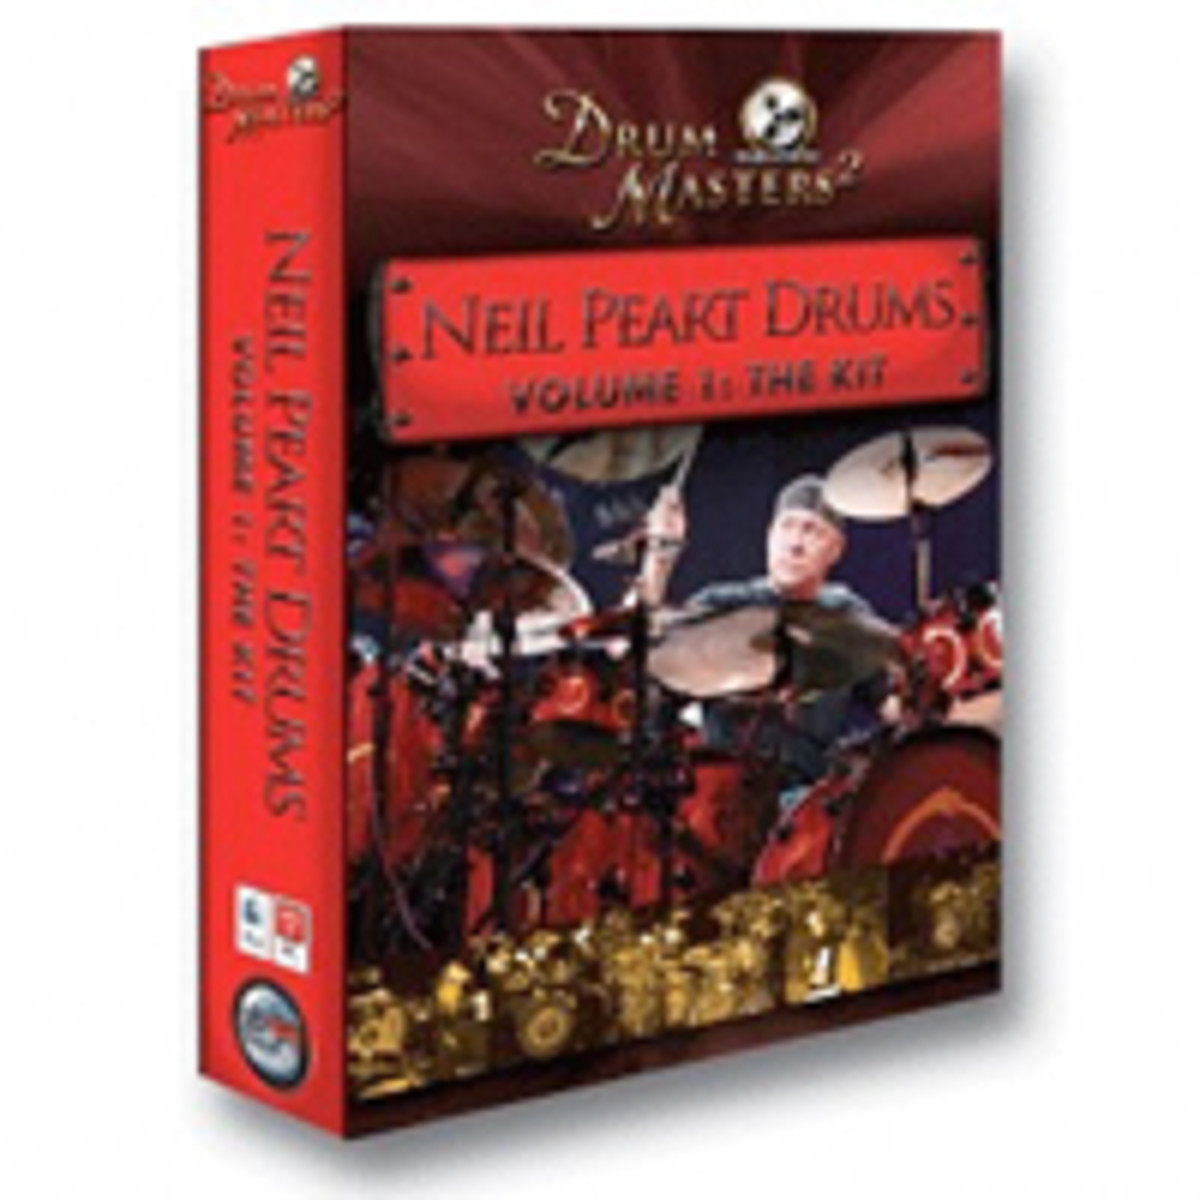 Neil Peart Drums: The Kit for BFD2